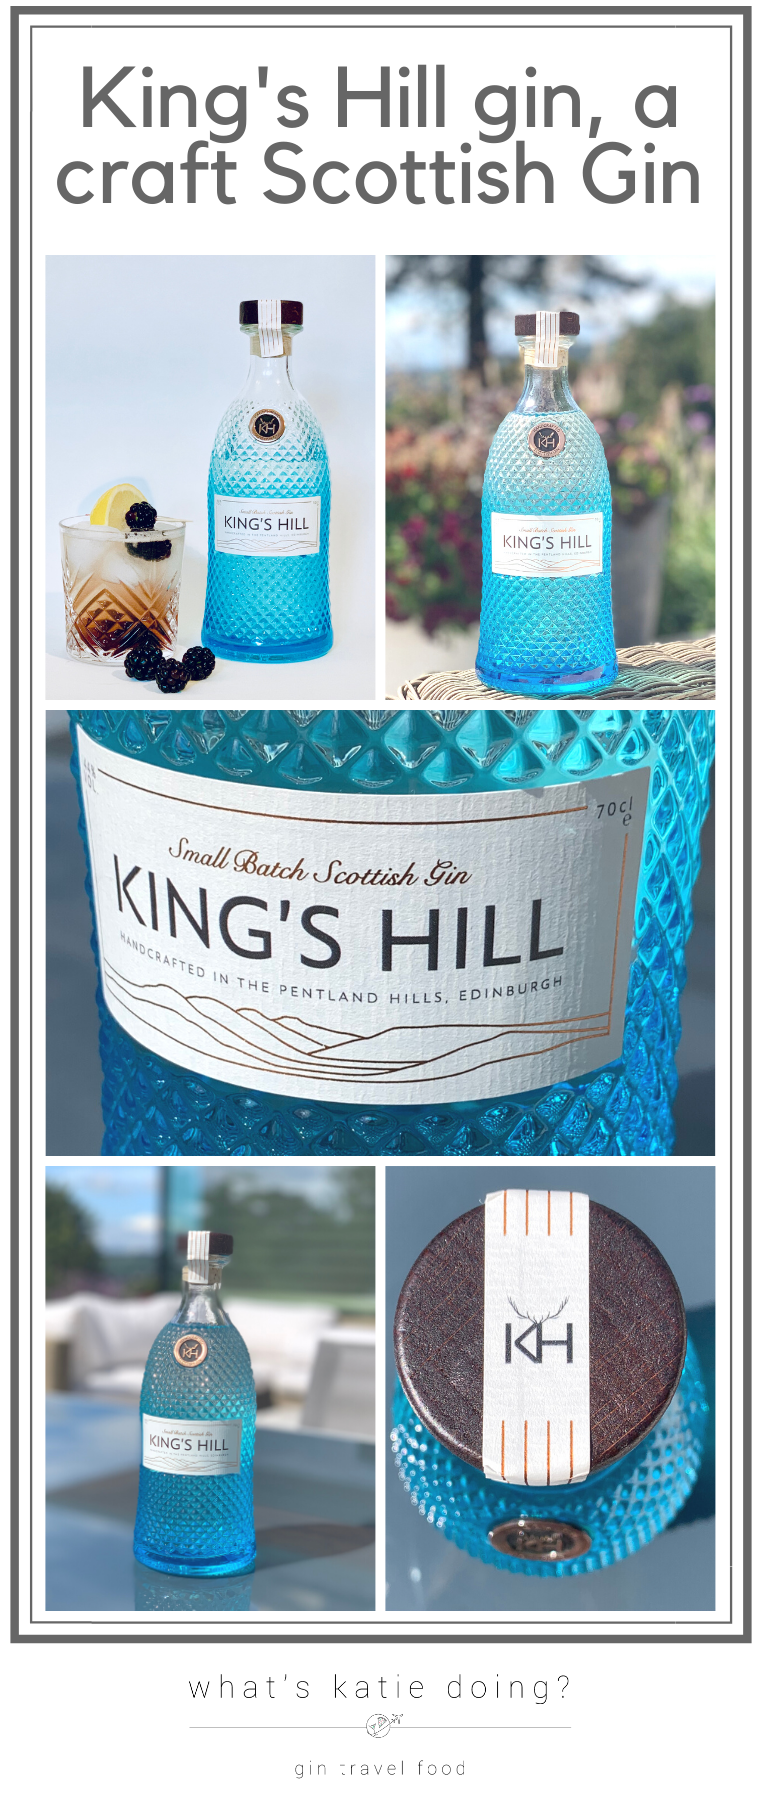 King's Hill gin a Scottish craft gin